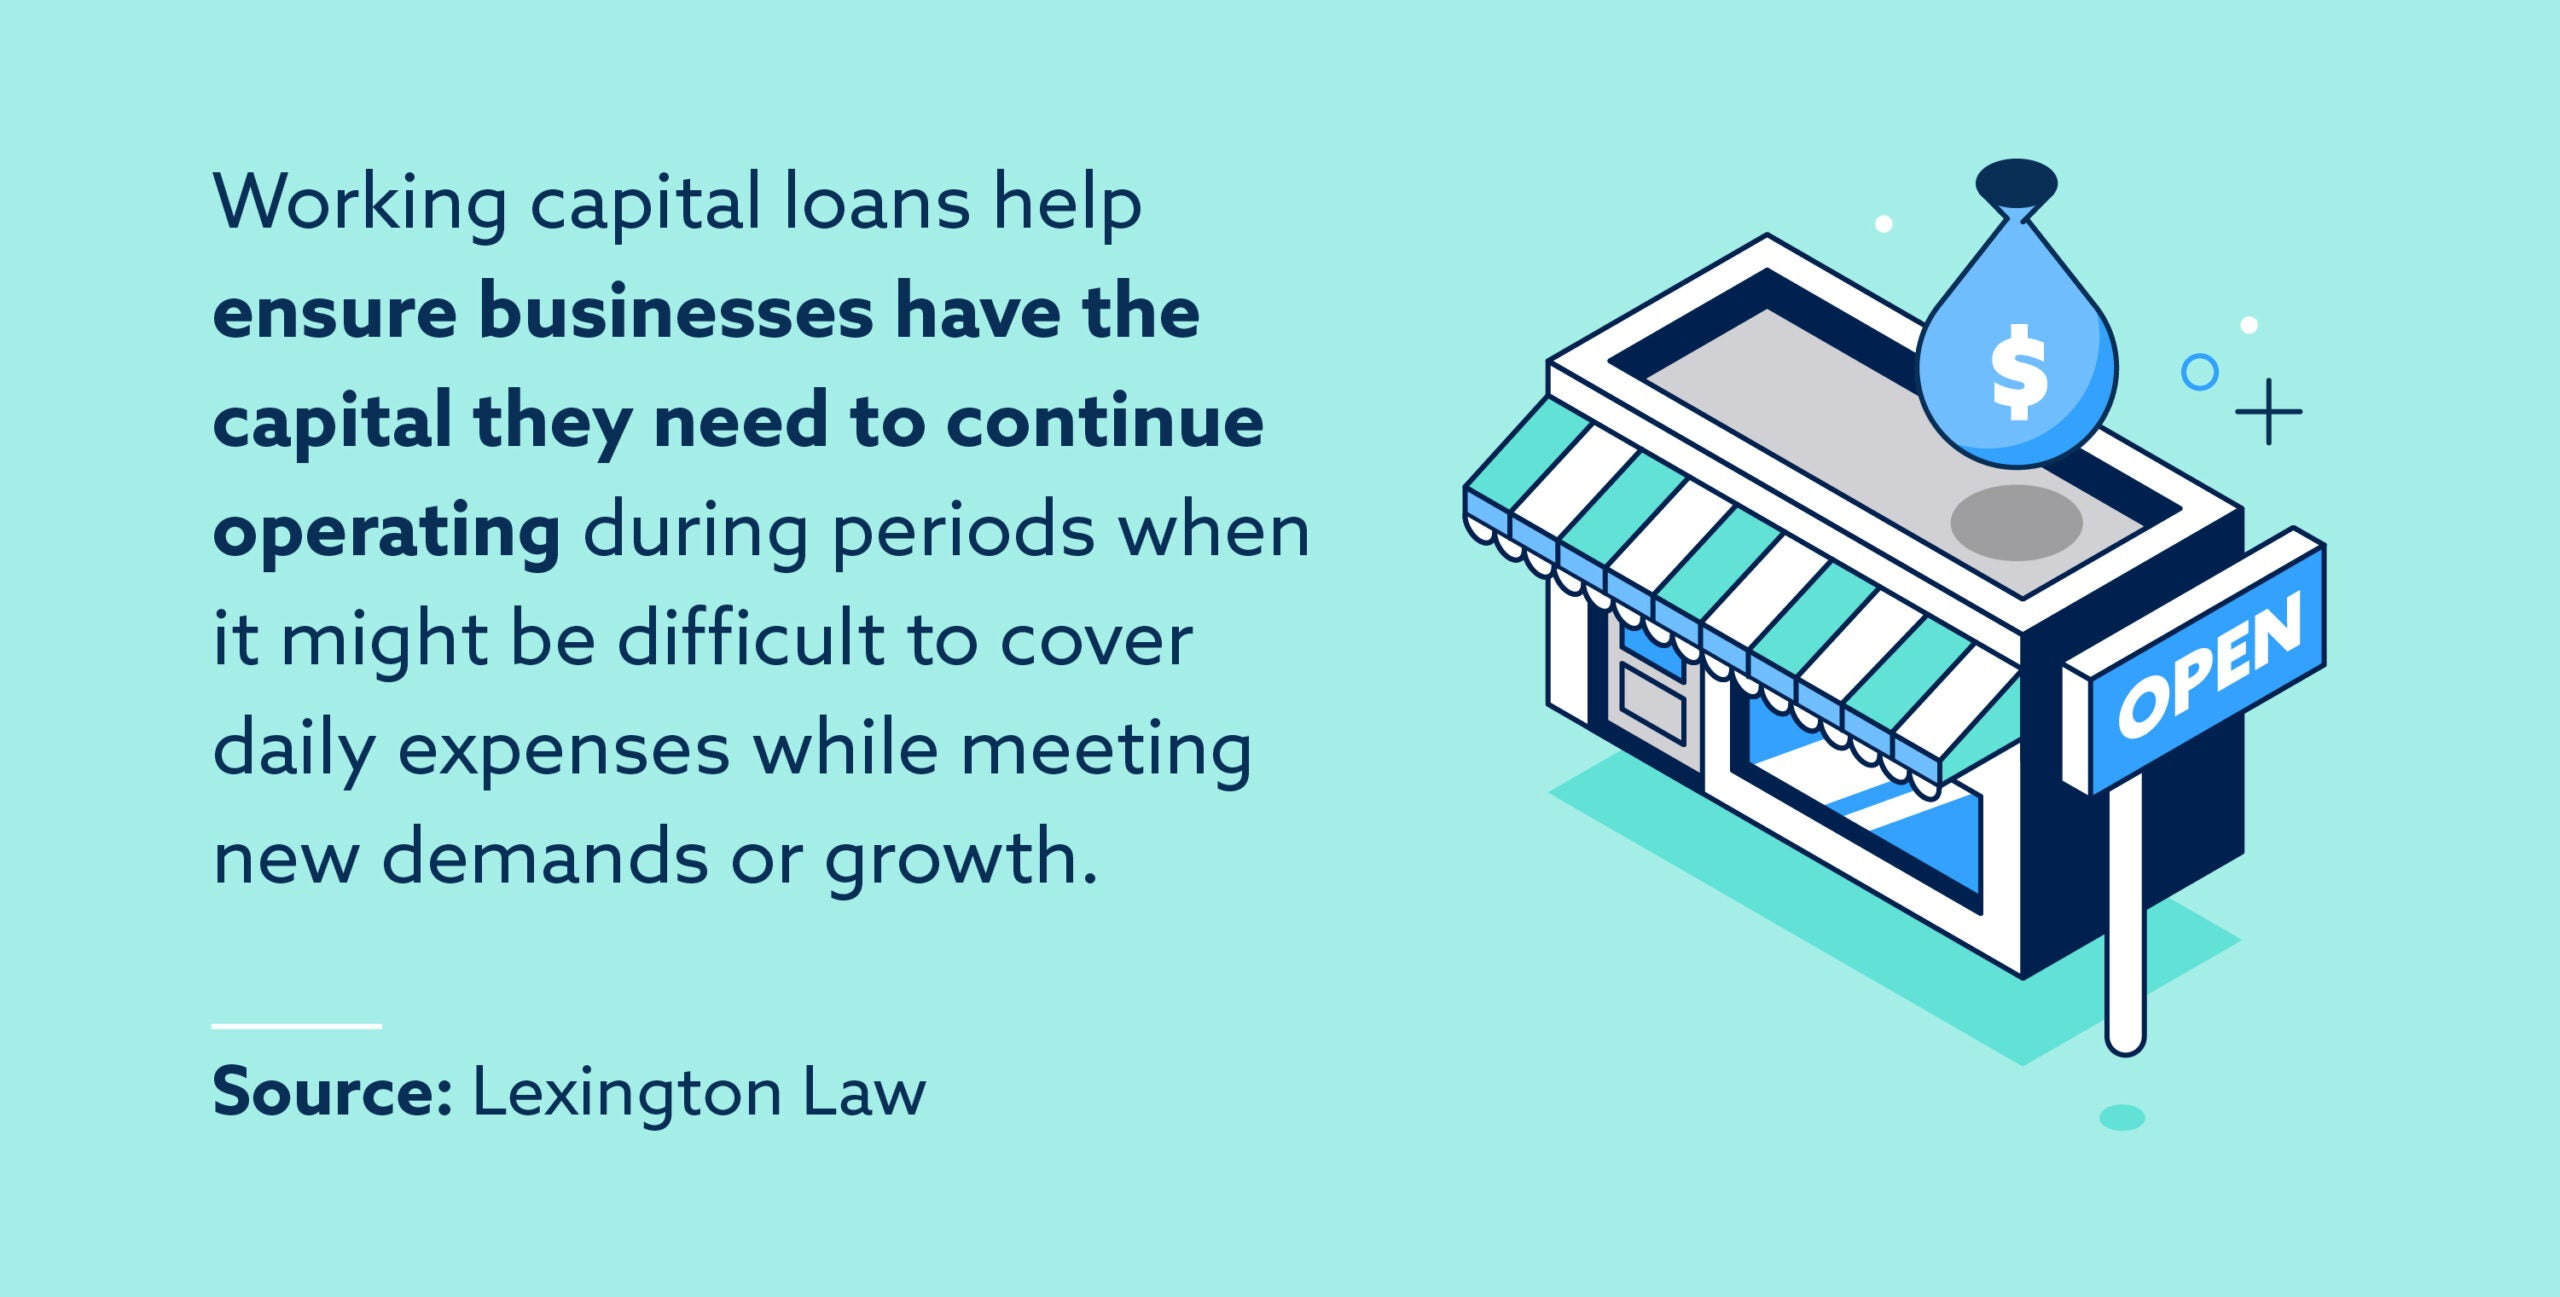 Working capital loans help ensure businesses have the capital they need to continue operating during periods when it might be difficult to cover daily expenses while meeting new demands or growth.